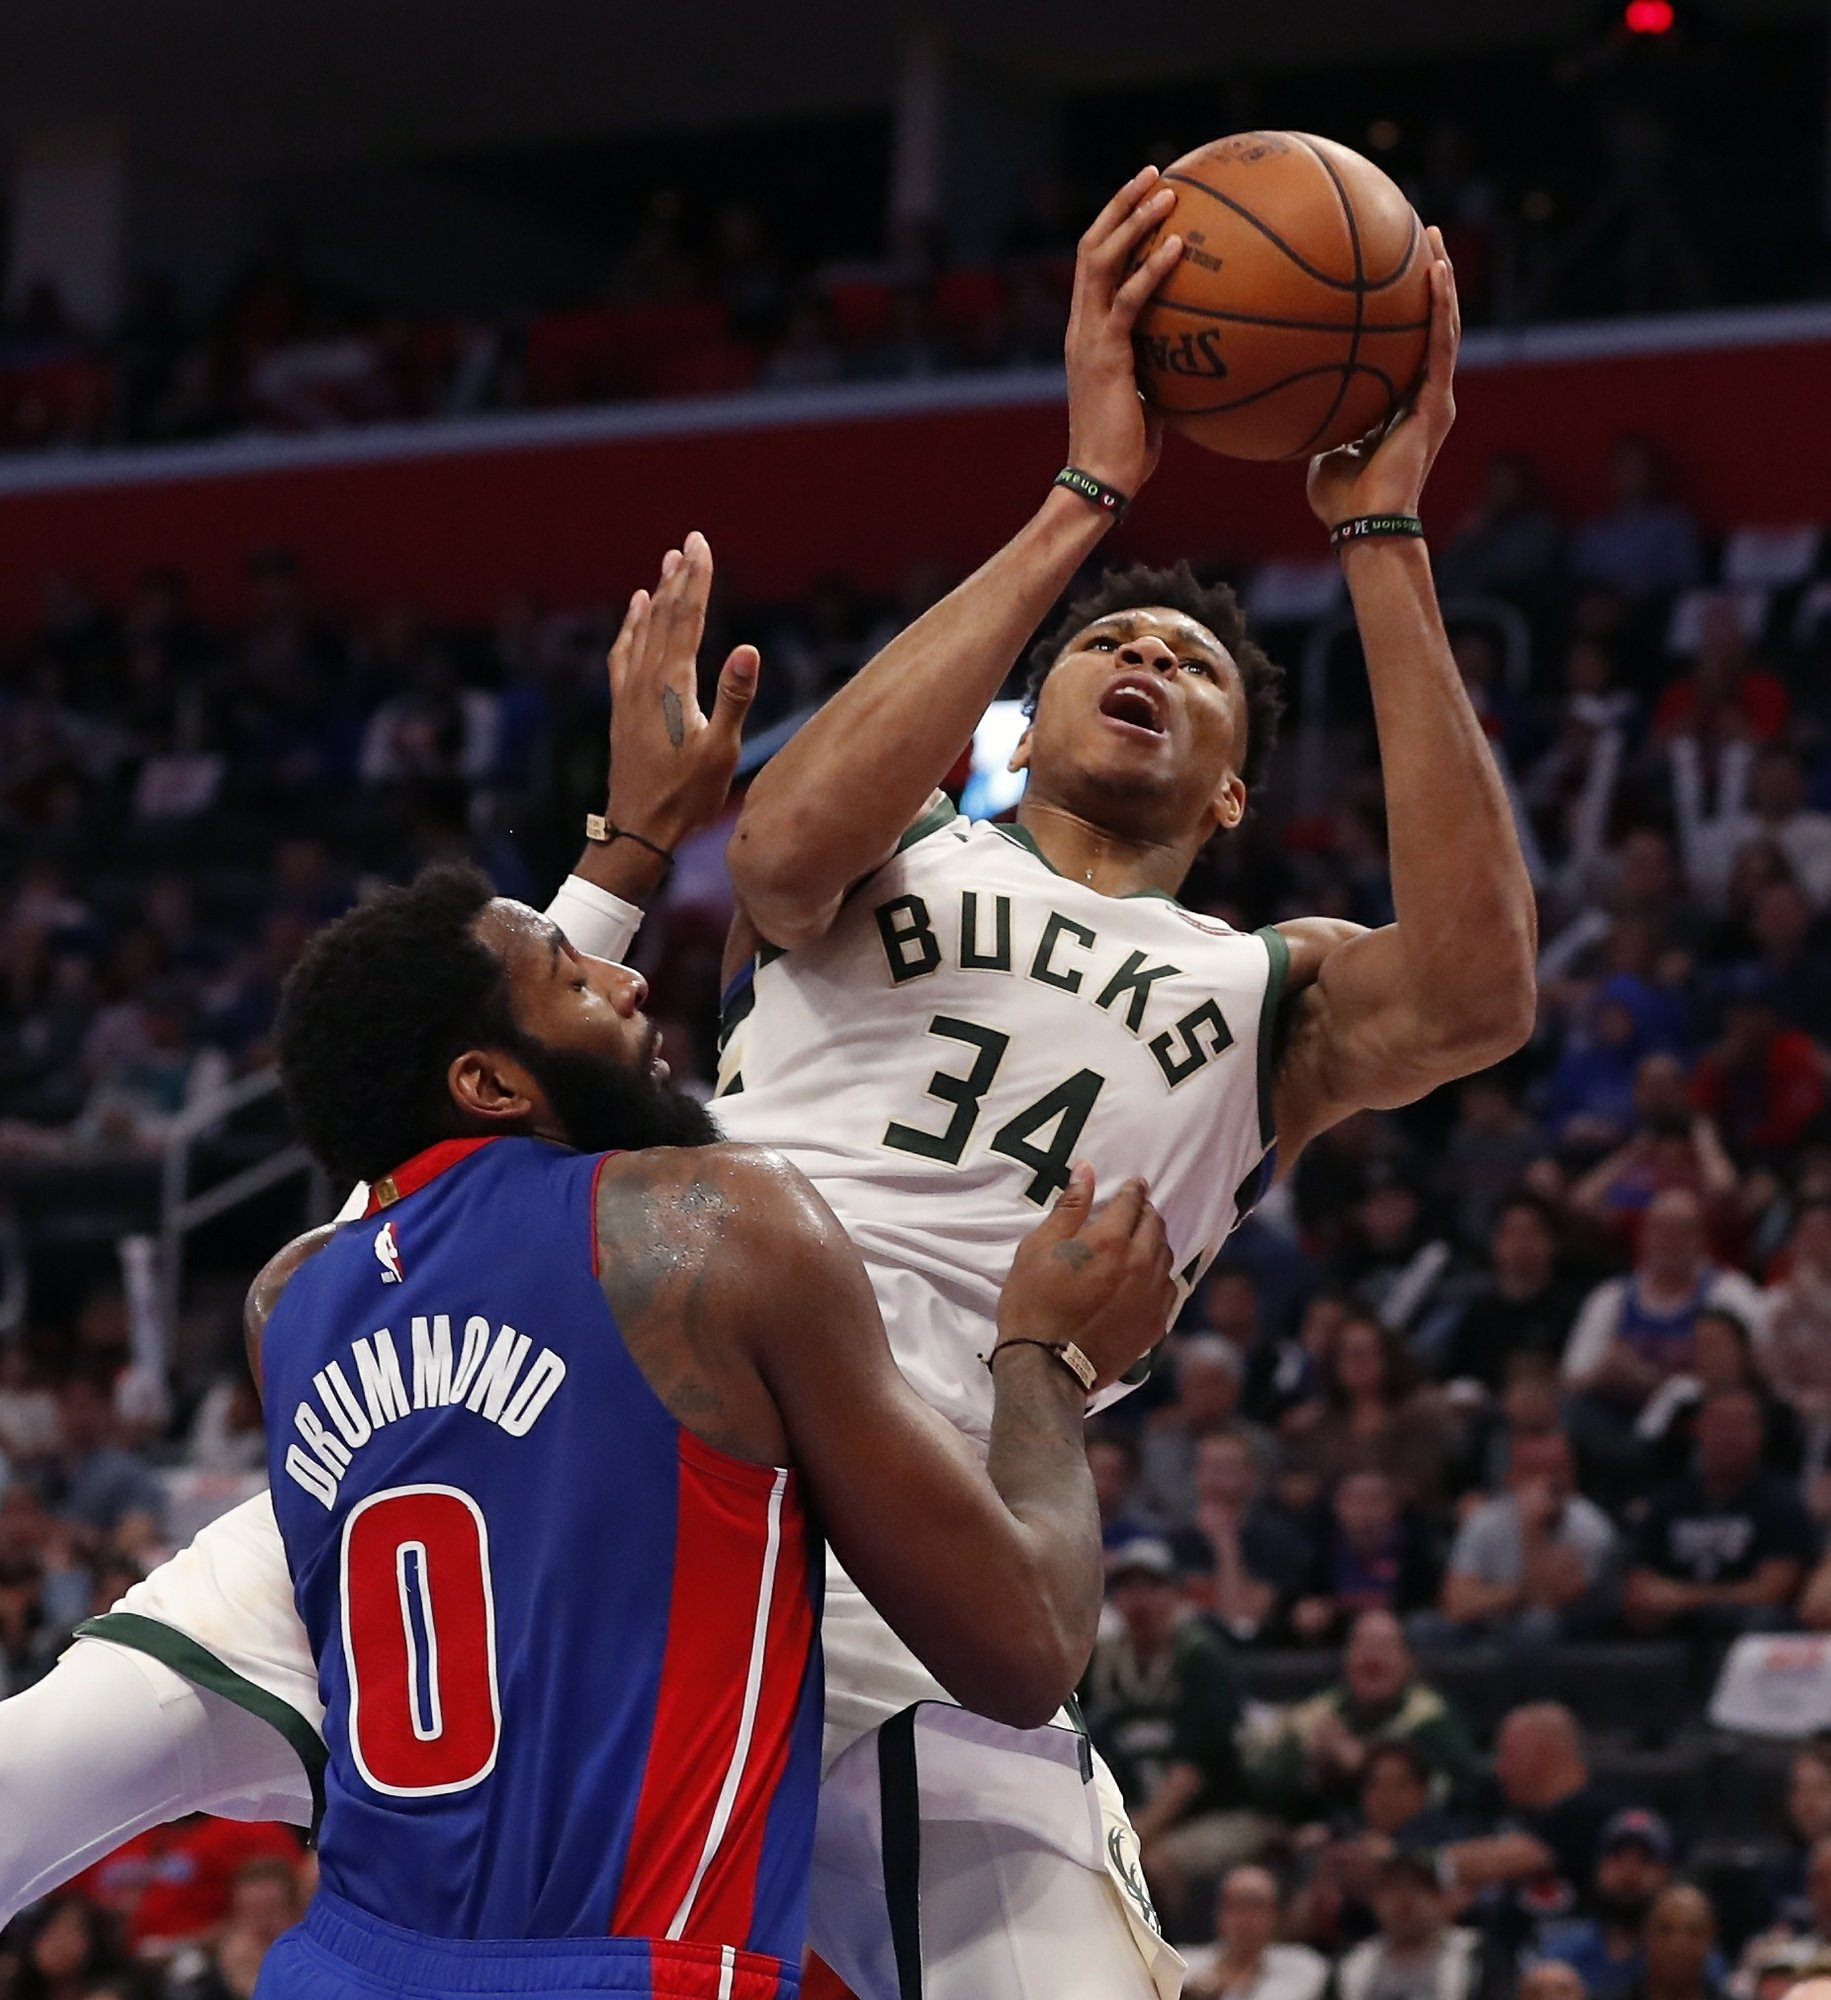 Giannis scores playoff career-high 41, does this (watch video) and the Bucks are out of the first round since 2001